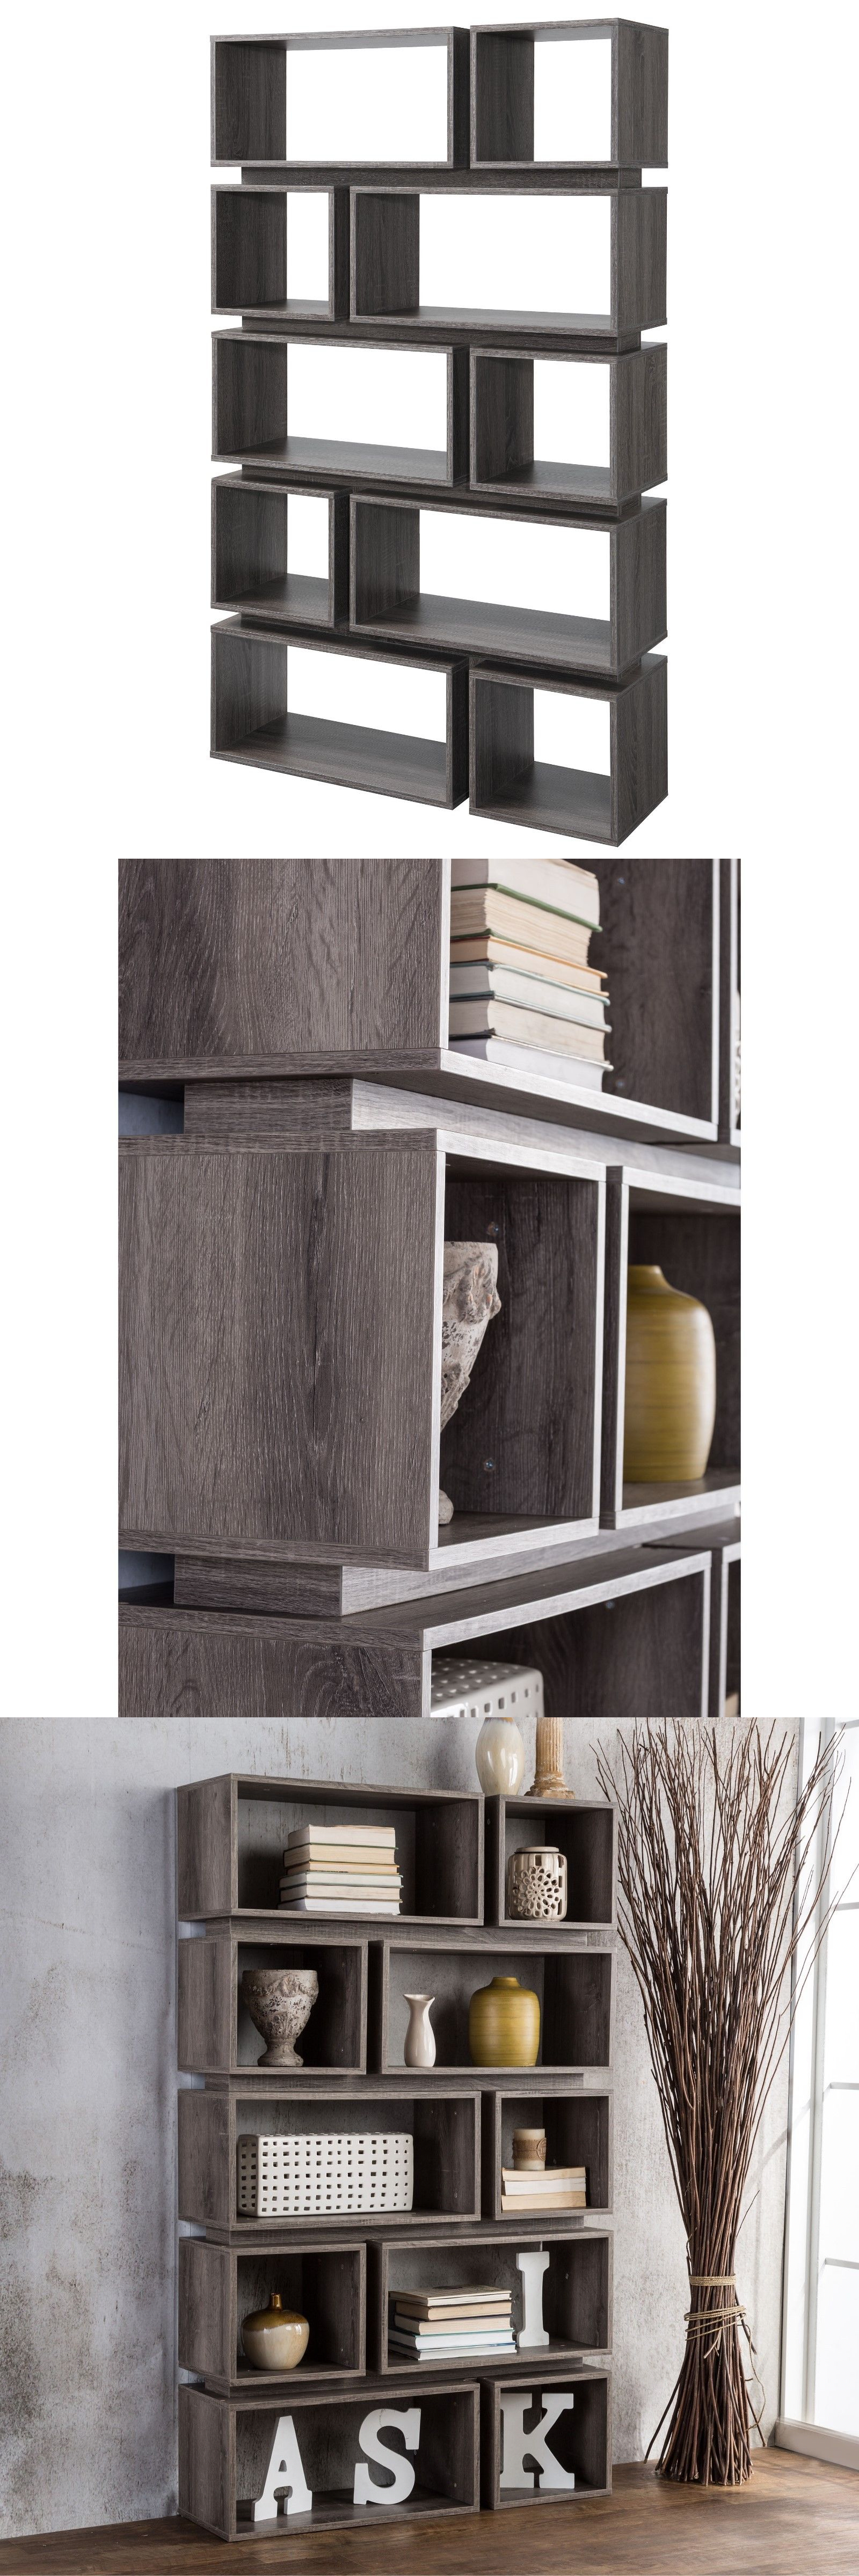 Bookcases rustic gray distressed bookcase stand modern